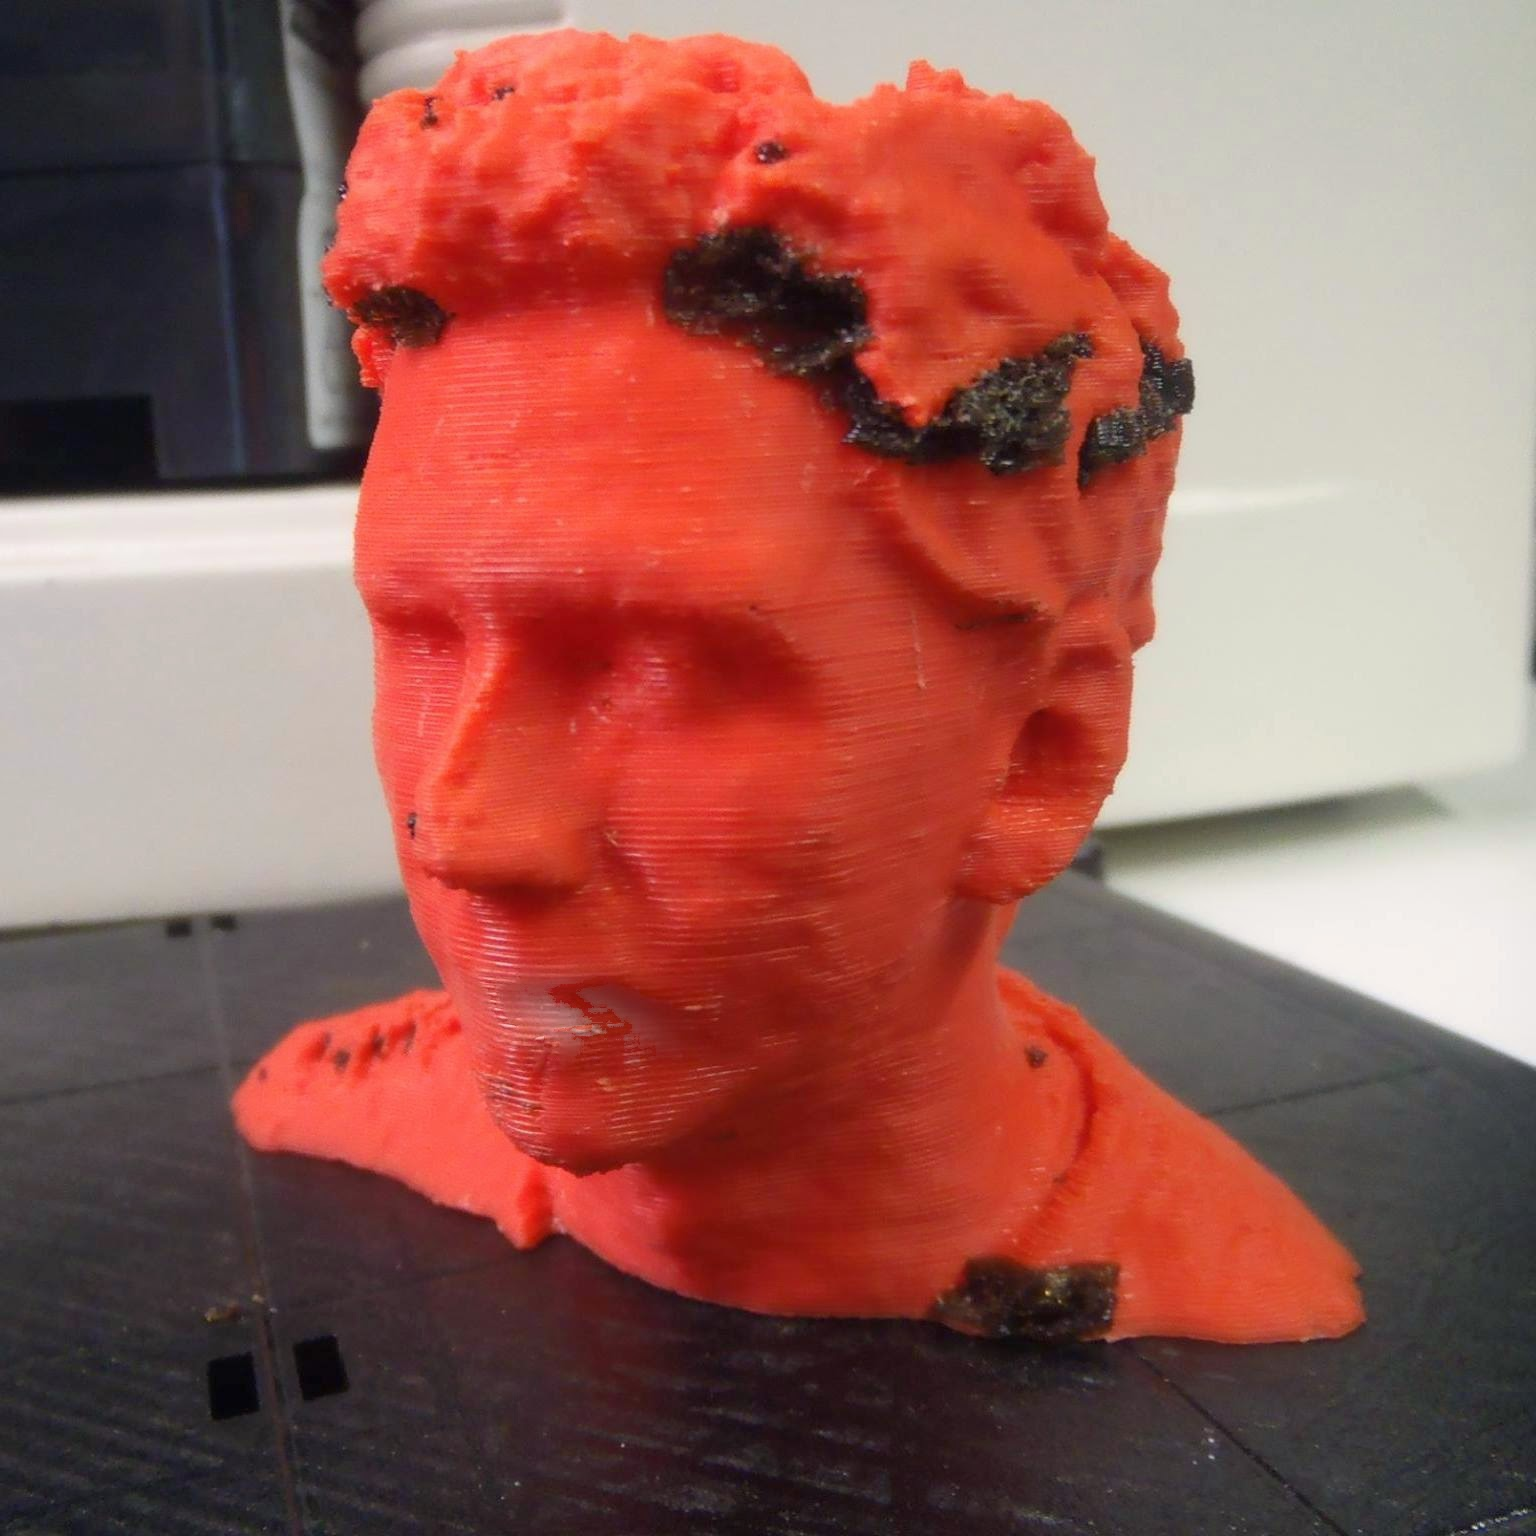 3D scanning, on the cheap